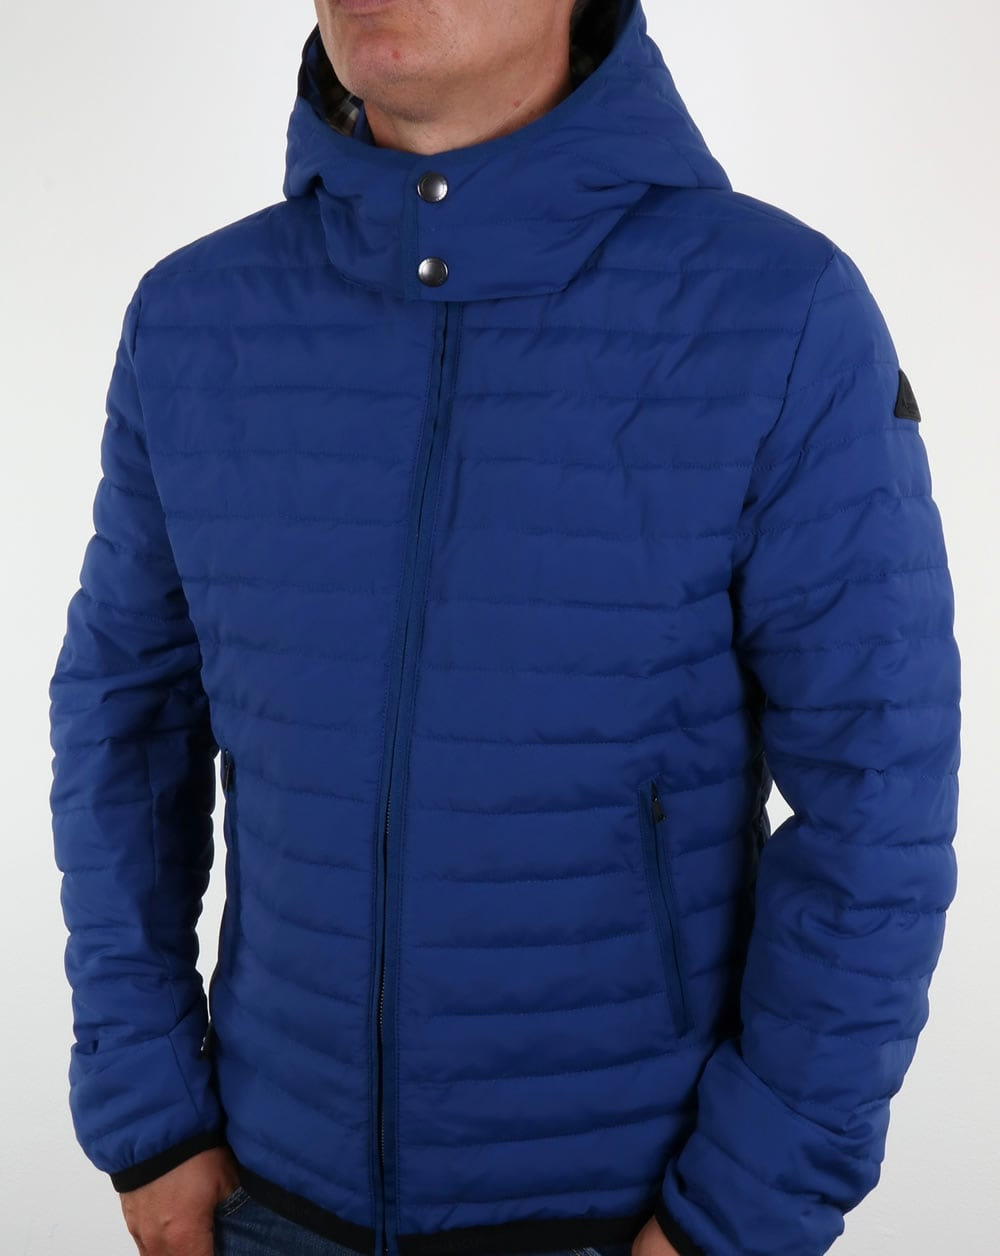 Aquascutum Emmett Quilted Jacket Bright Blue Padded Coat